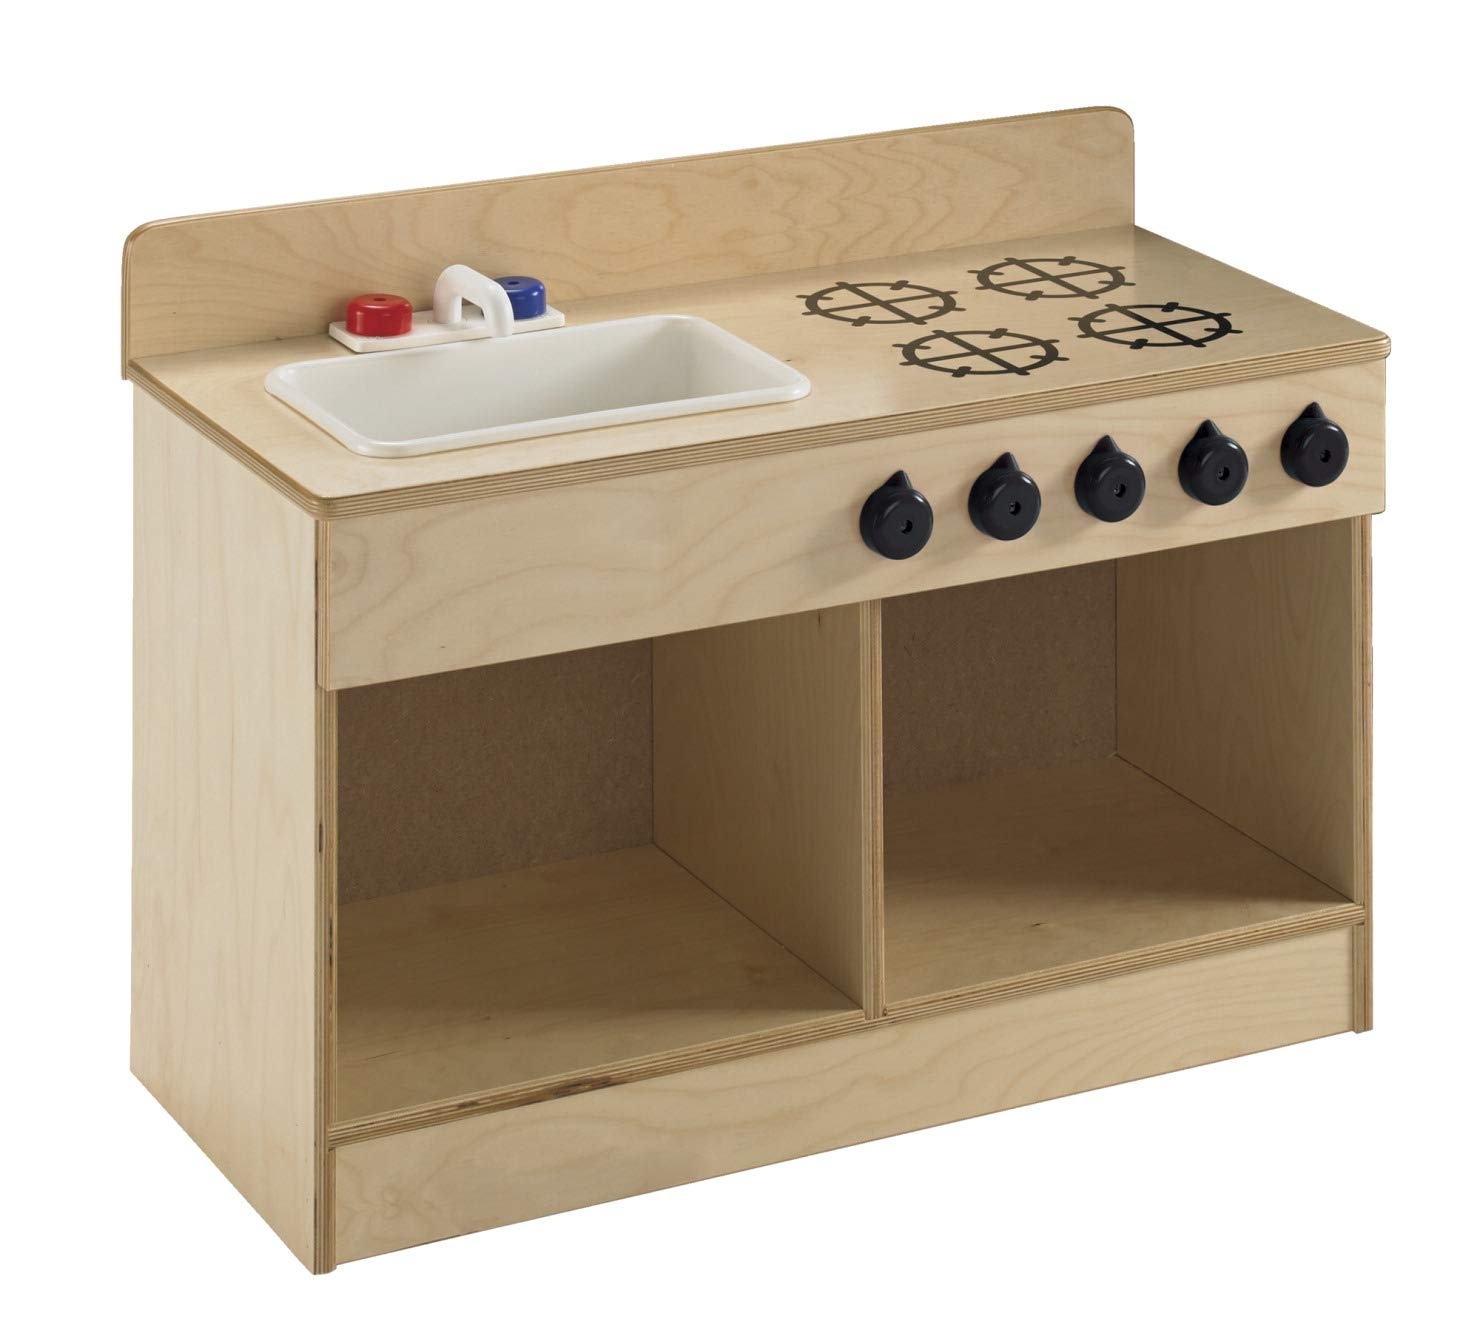 Childcraft 1491196 Toddler Sink and Stove Combo, 21.5'' Height, 13.38'' Width, 29.5'' Length, Natural Wood by Childcraft (Image #3)